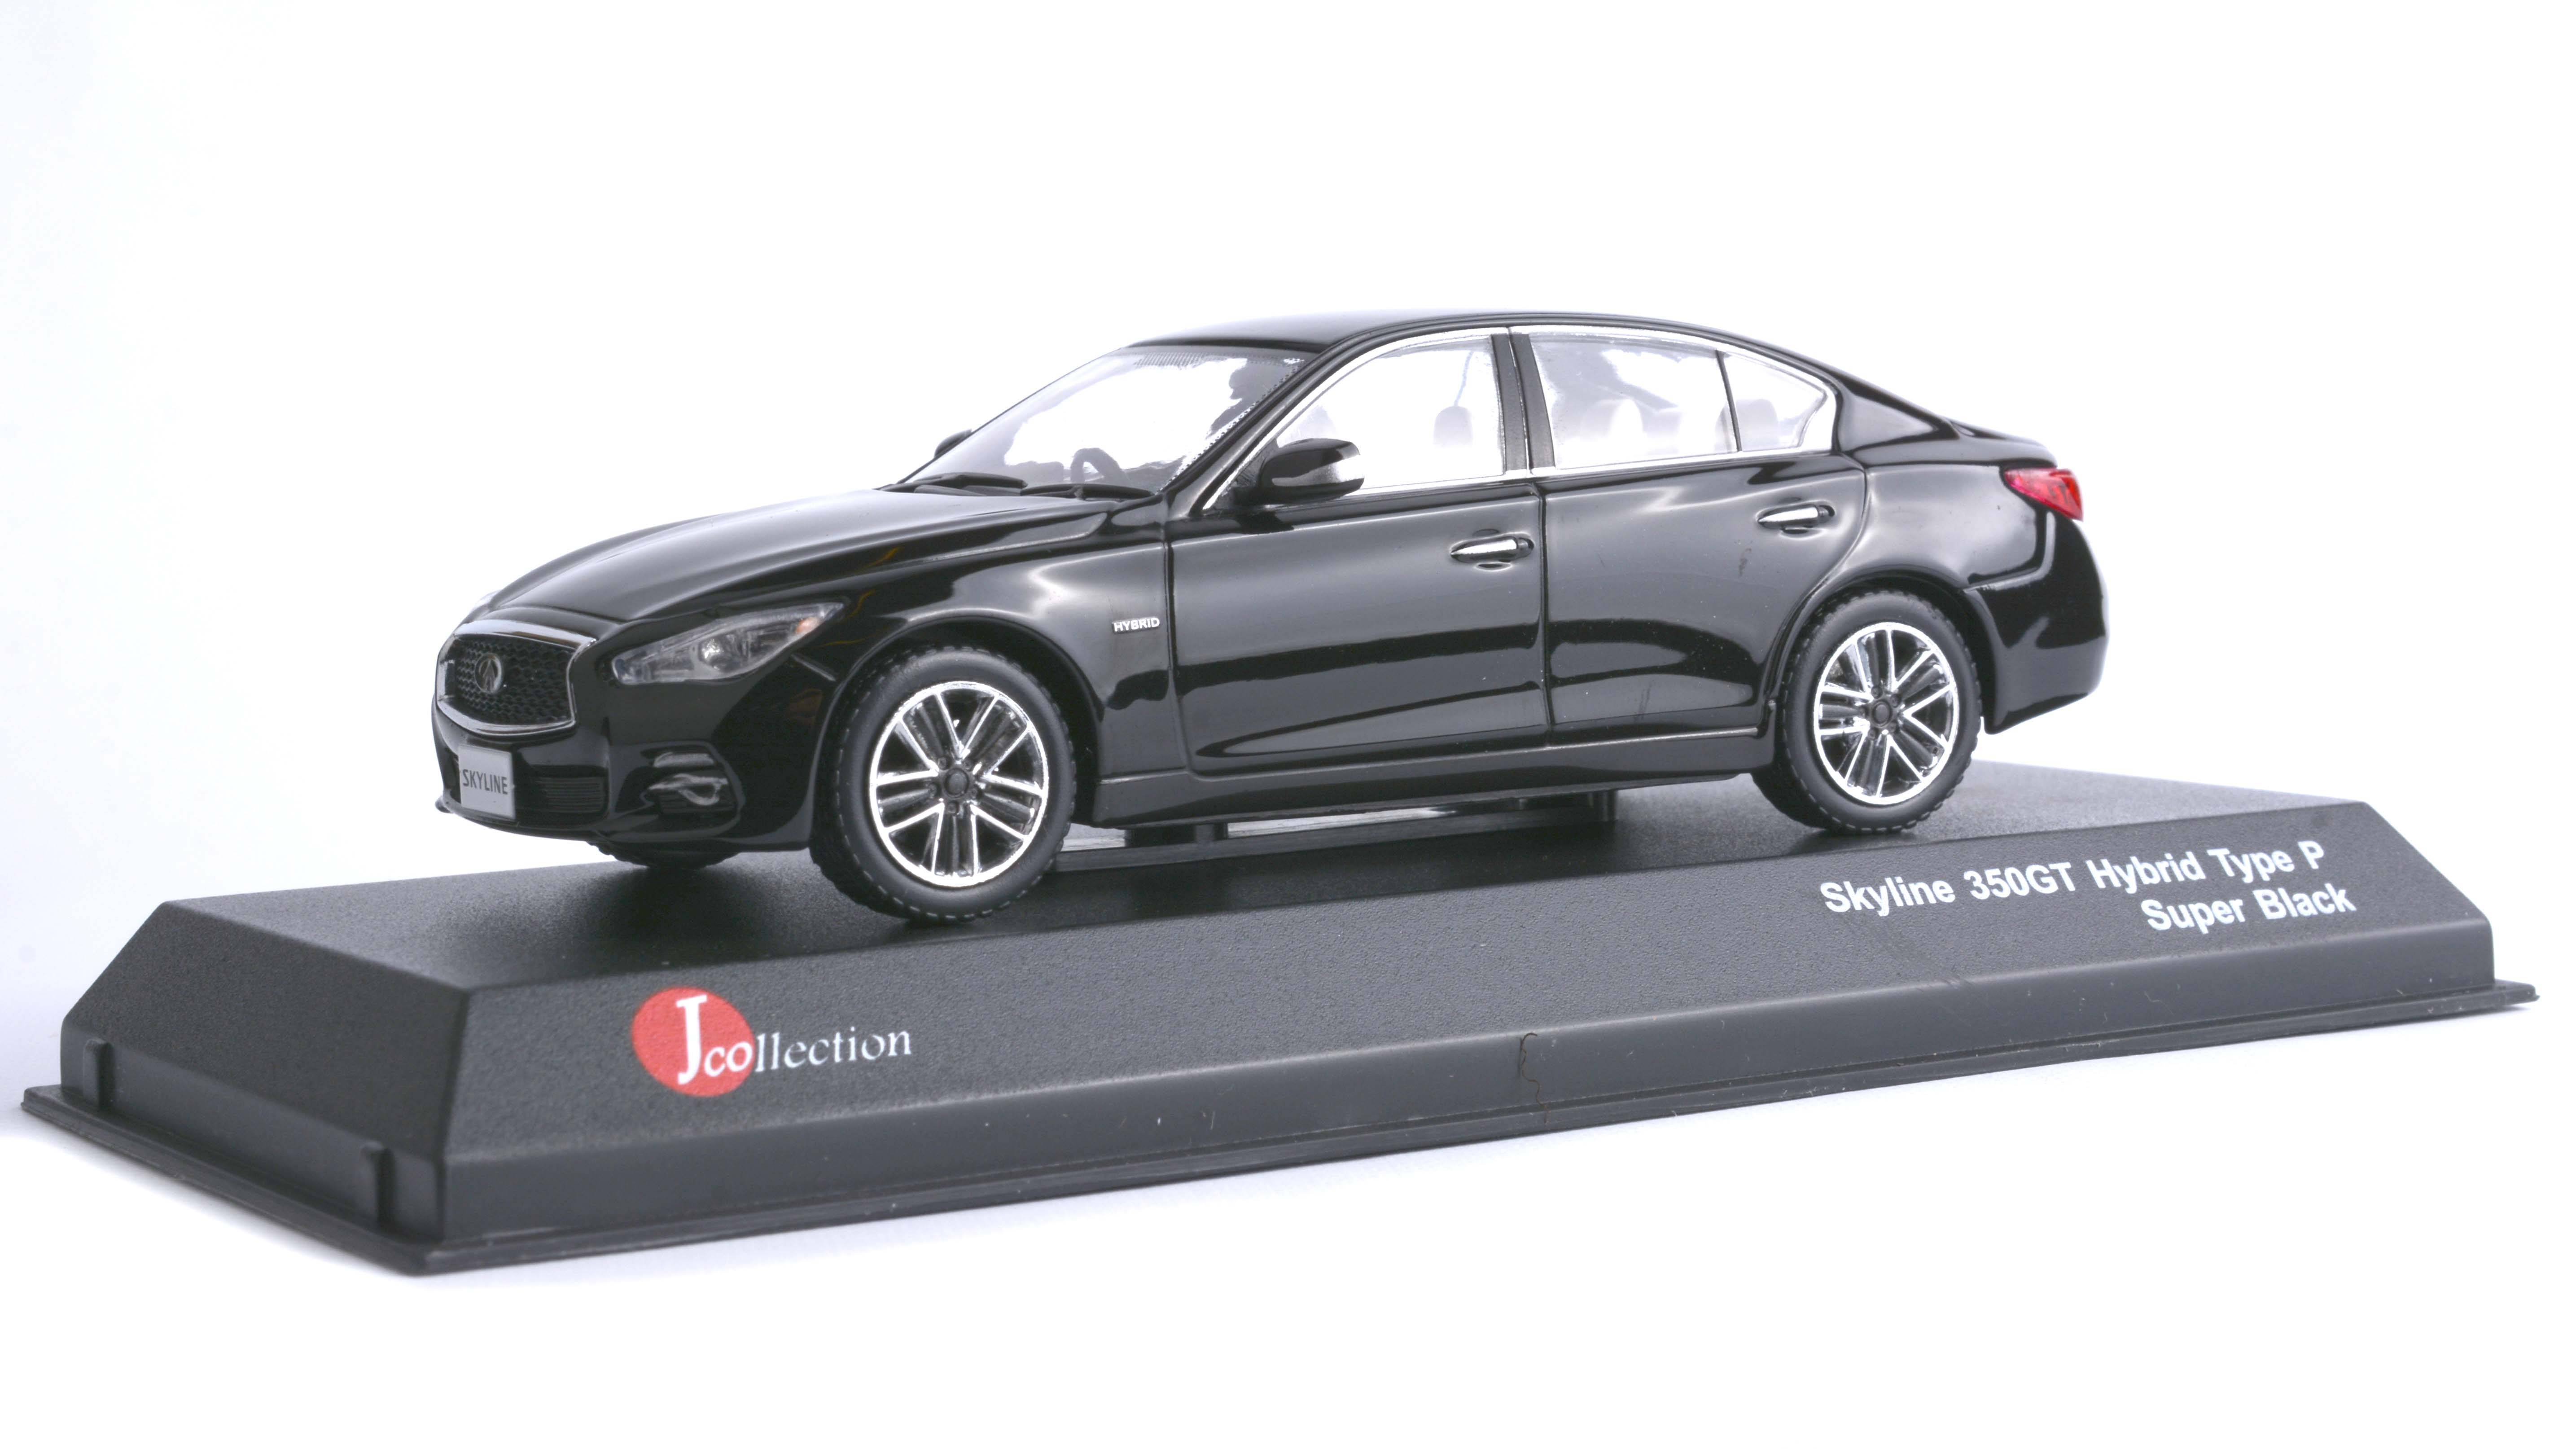 Nissan Skyline 350GT Hybrid Type P 1:43 - Jcollection časopis s modelem